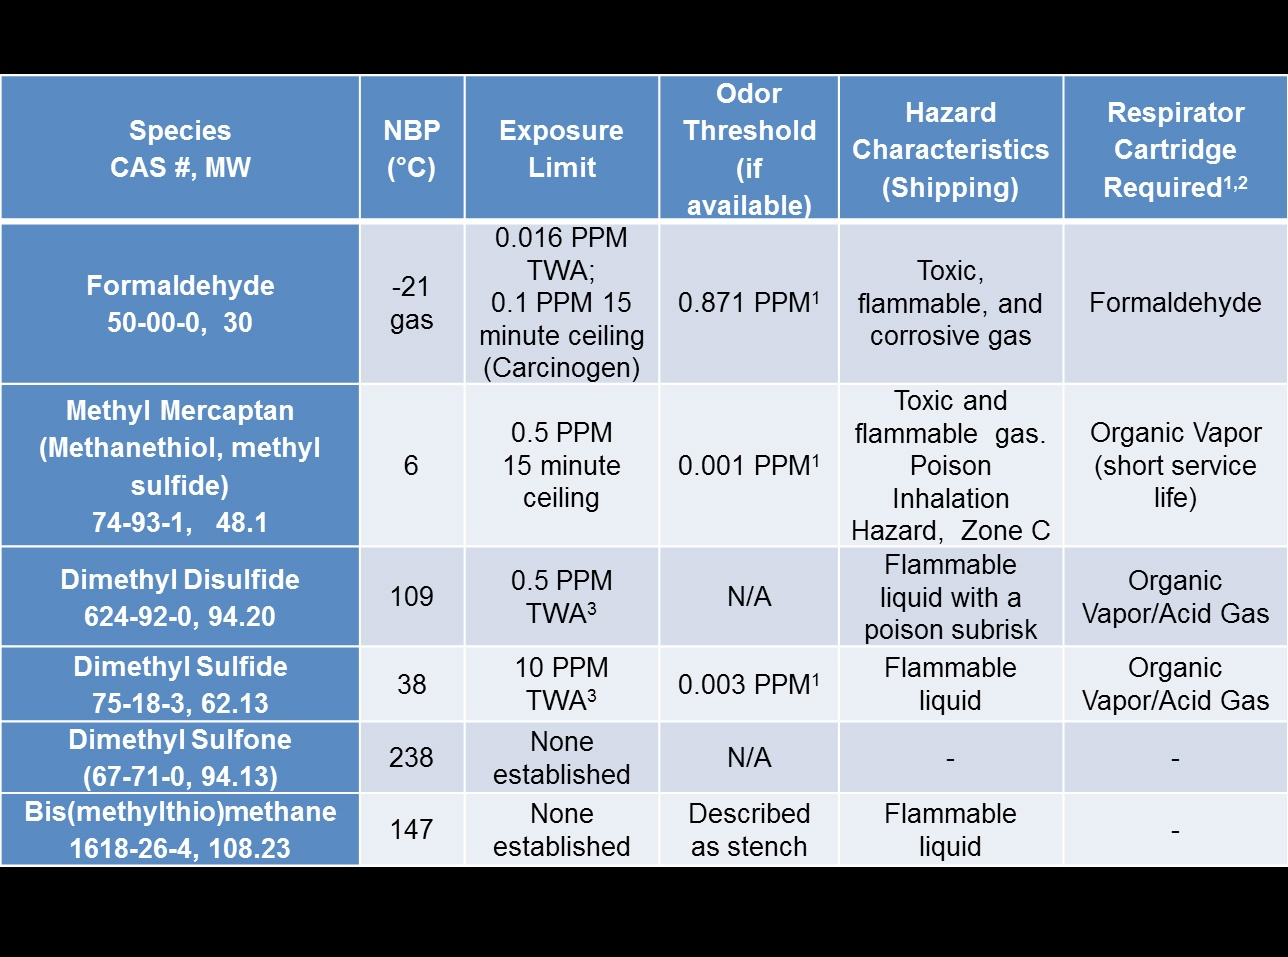 Table 1: DMSO Decomposition Products and Characteristics